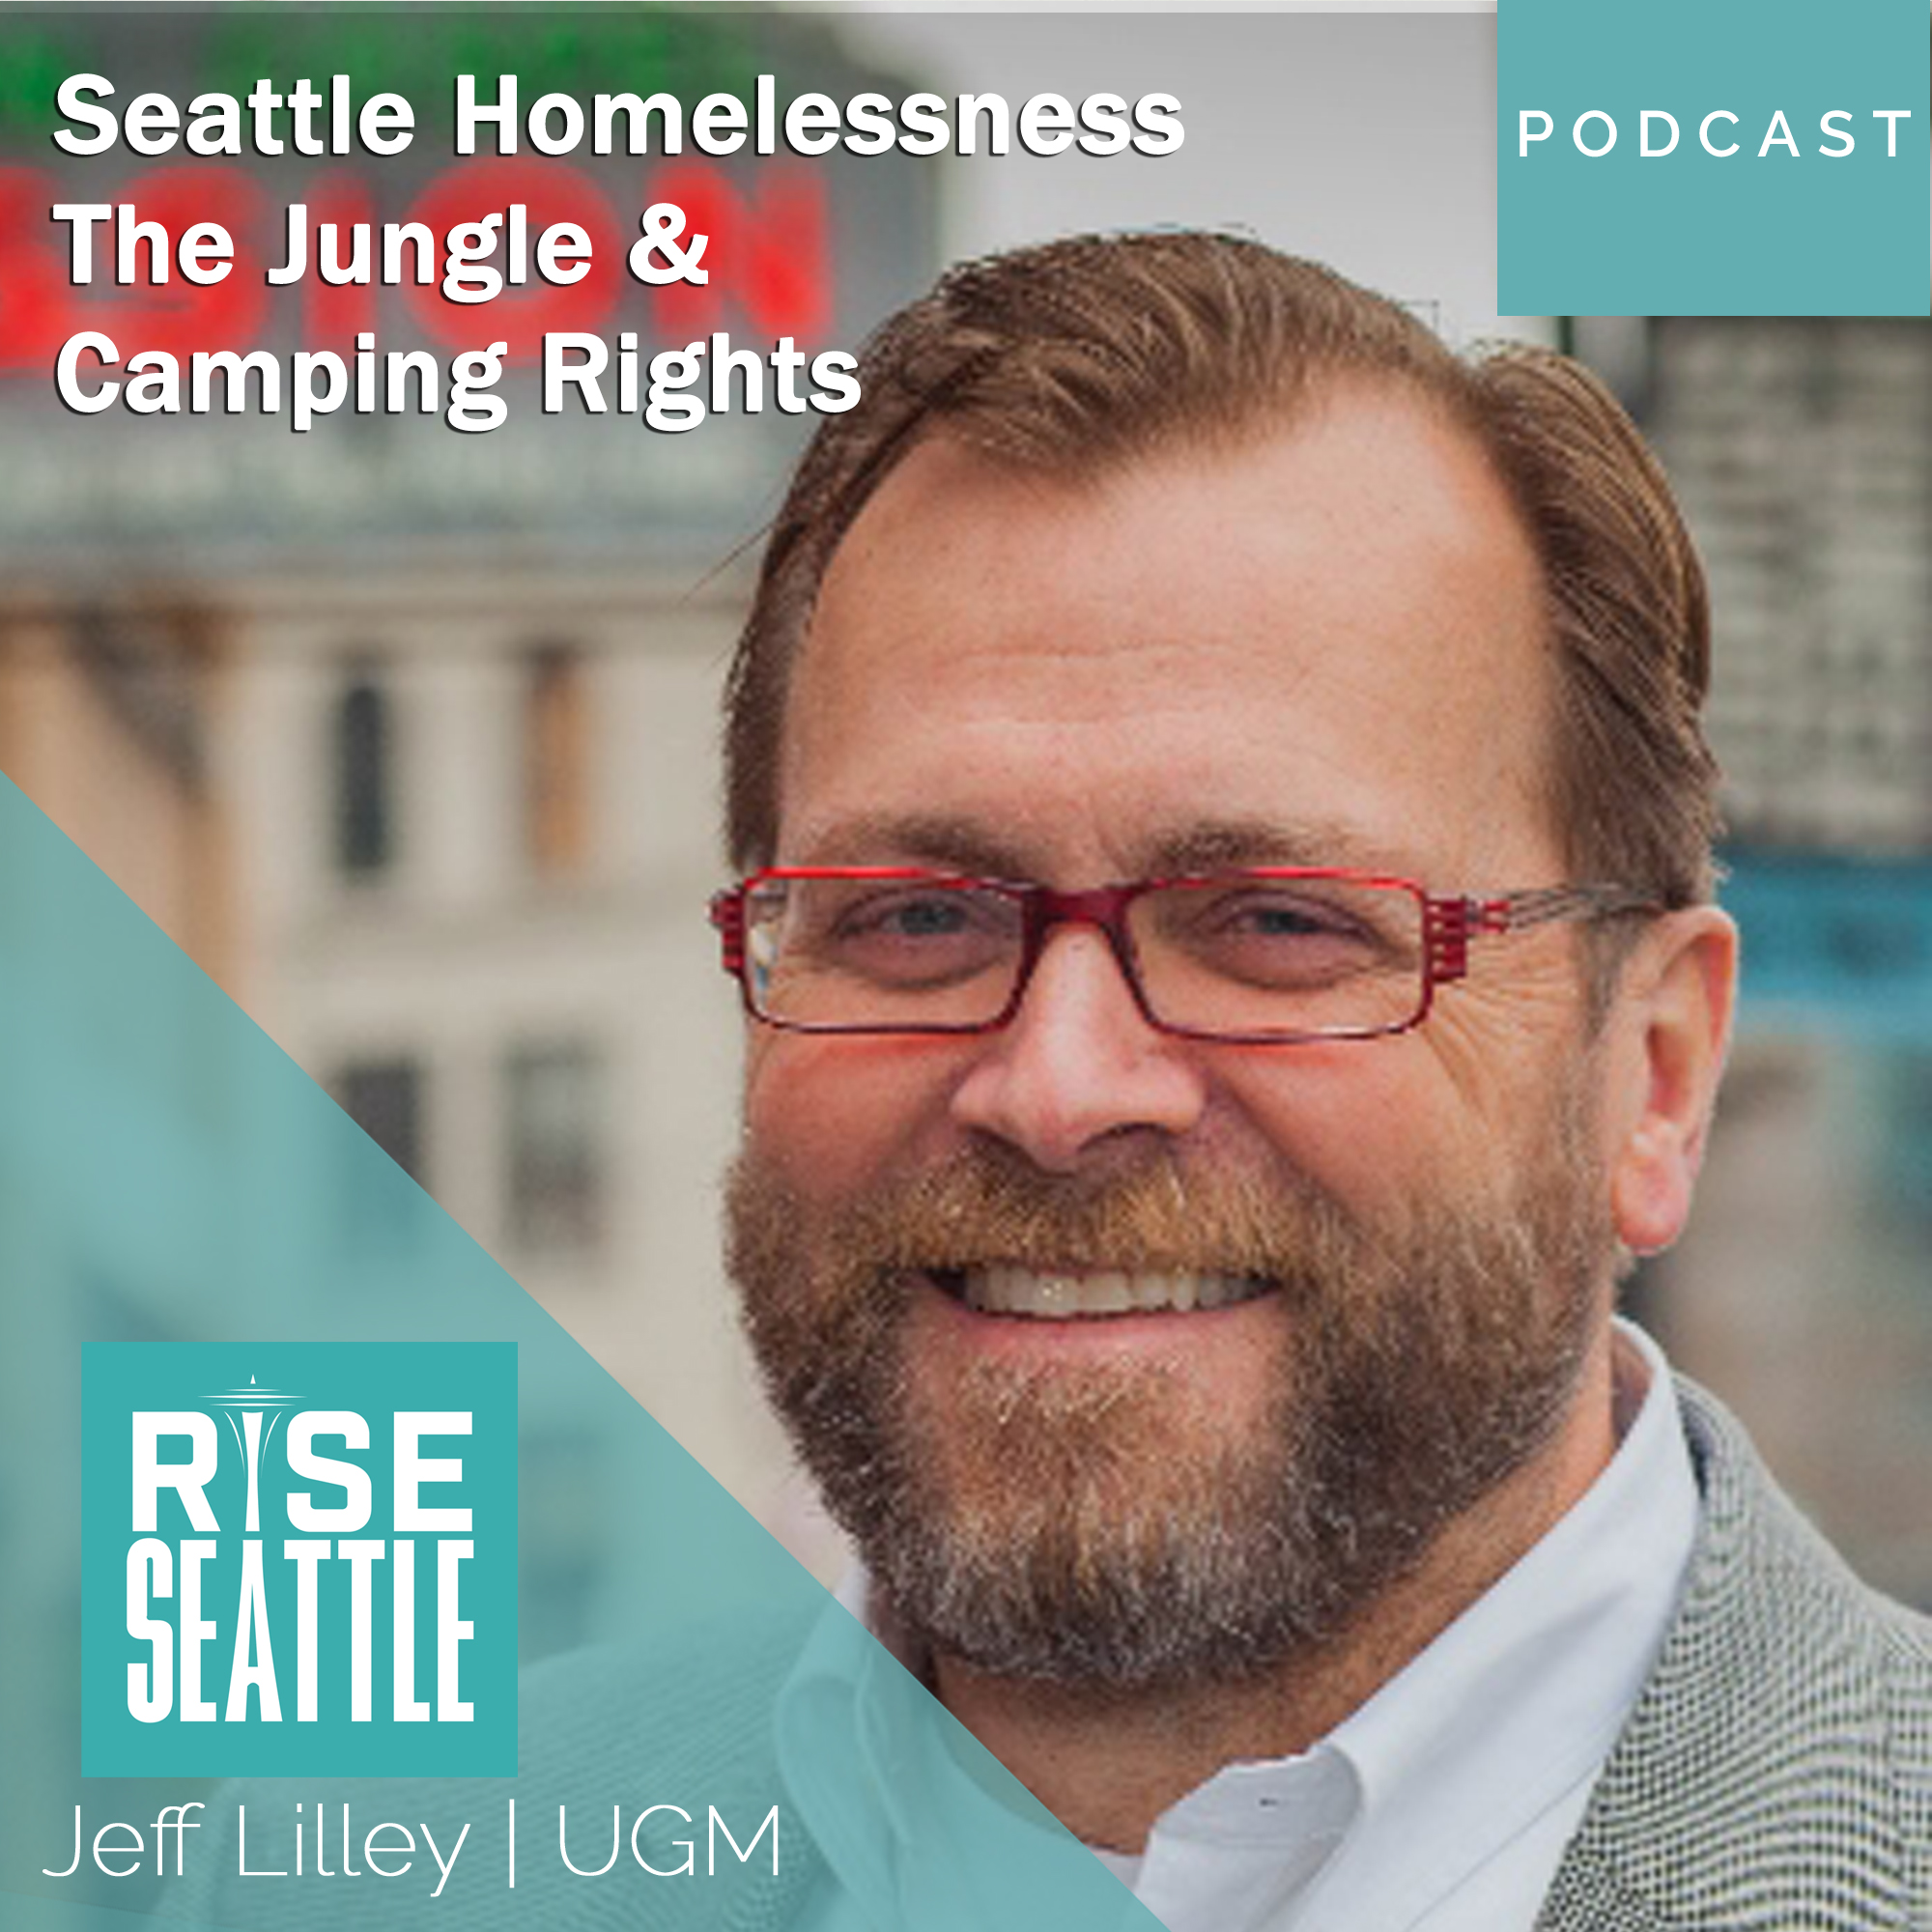 """S1.E7. Jeff Lilley: Seattle Homelessness, Clearing """"the Jungle"""" & Camping Rights"""